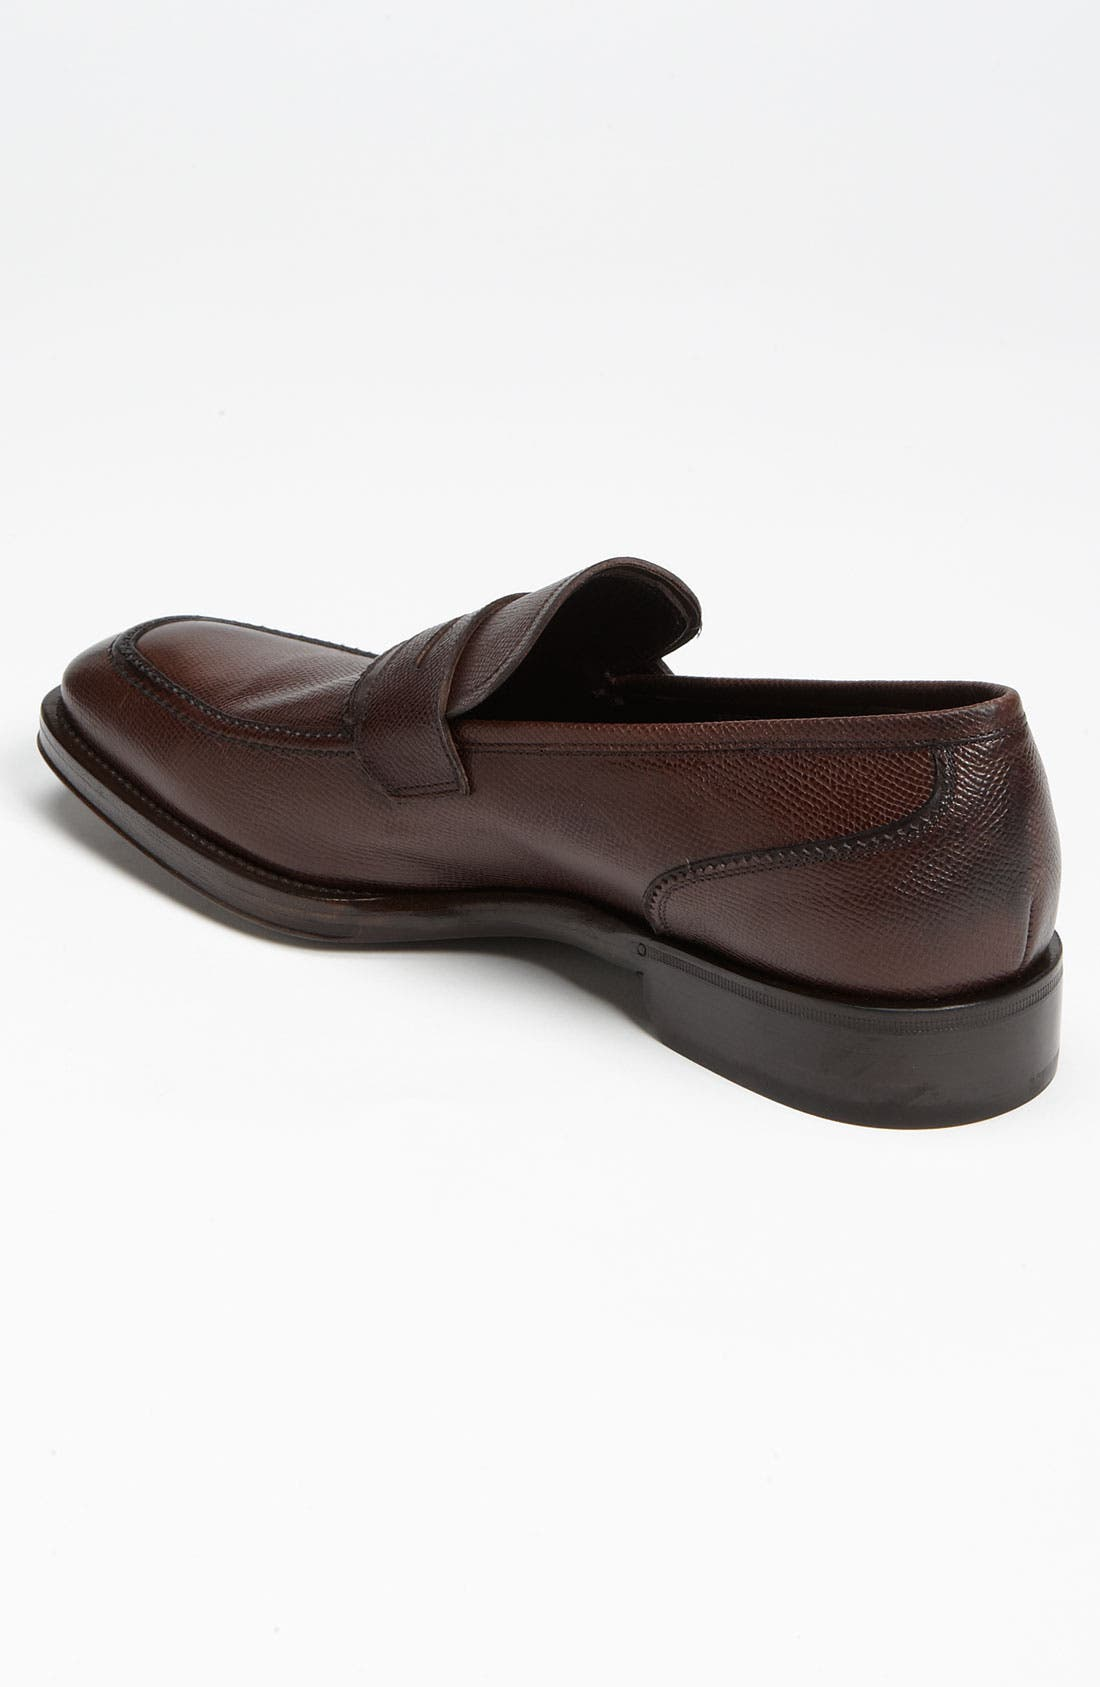 Alternate Image 2  - Salvatore Ferragamo 'Atene' Loafer